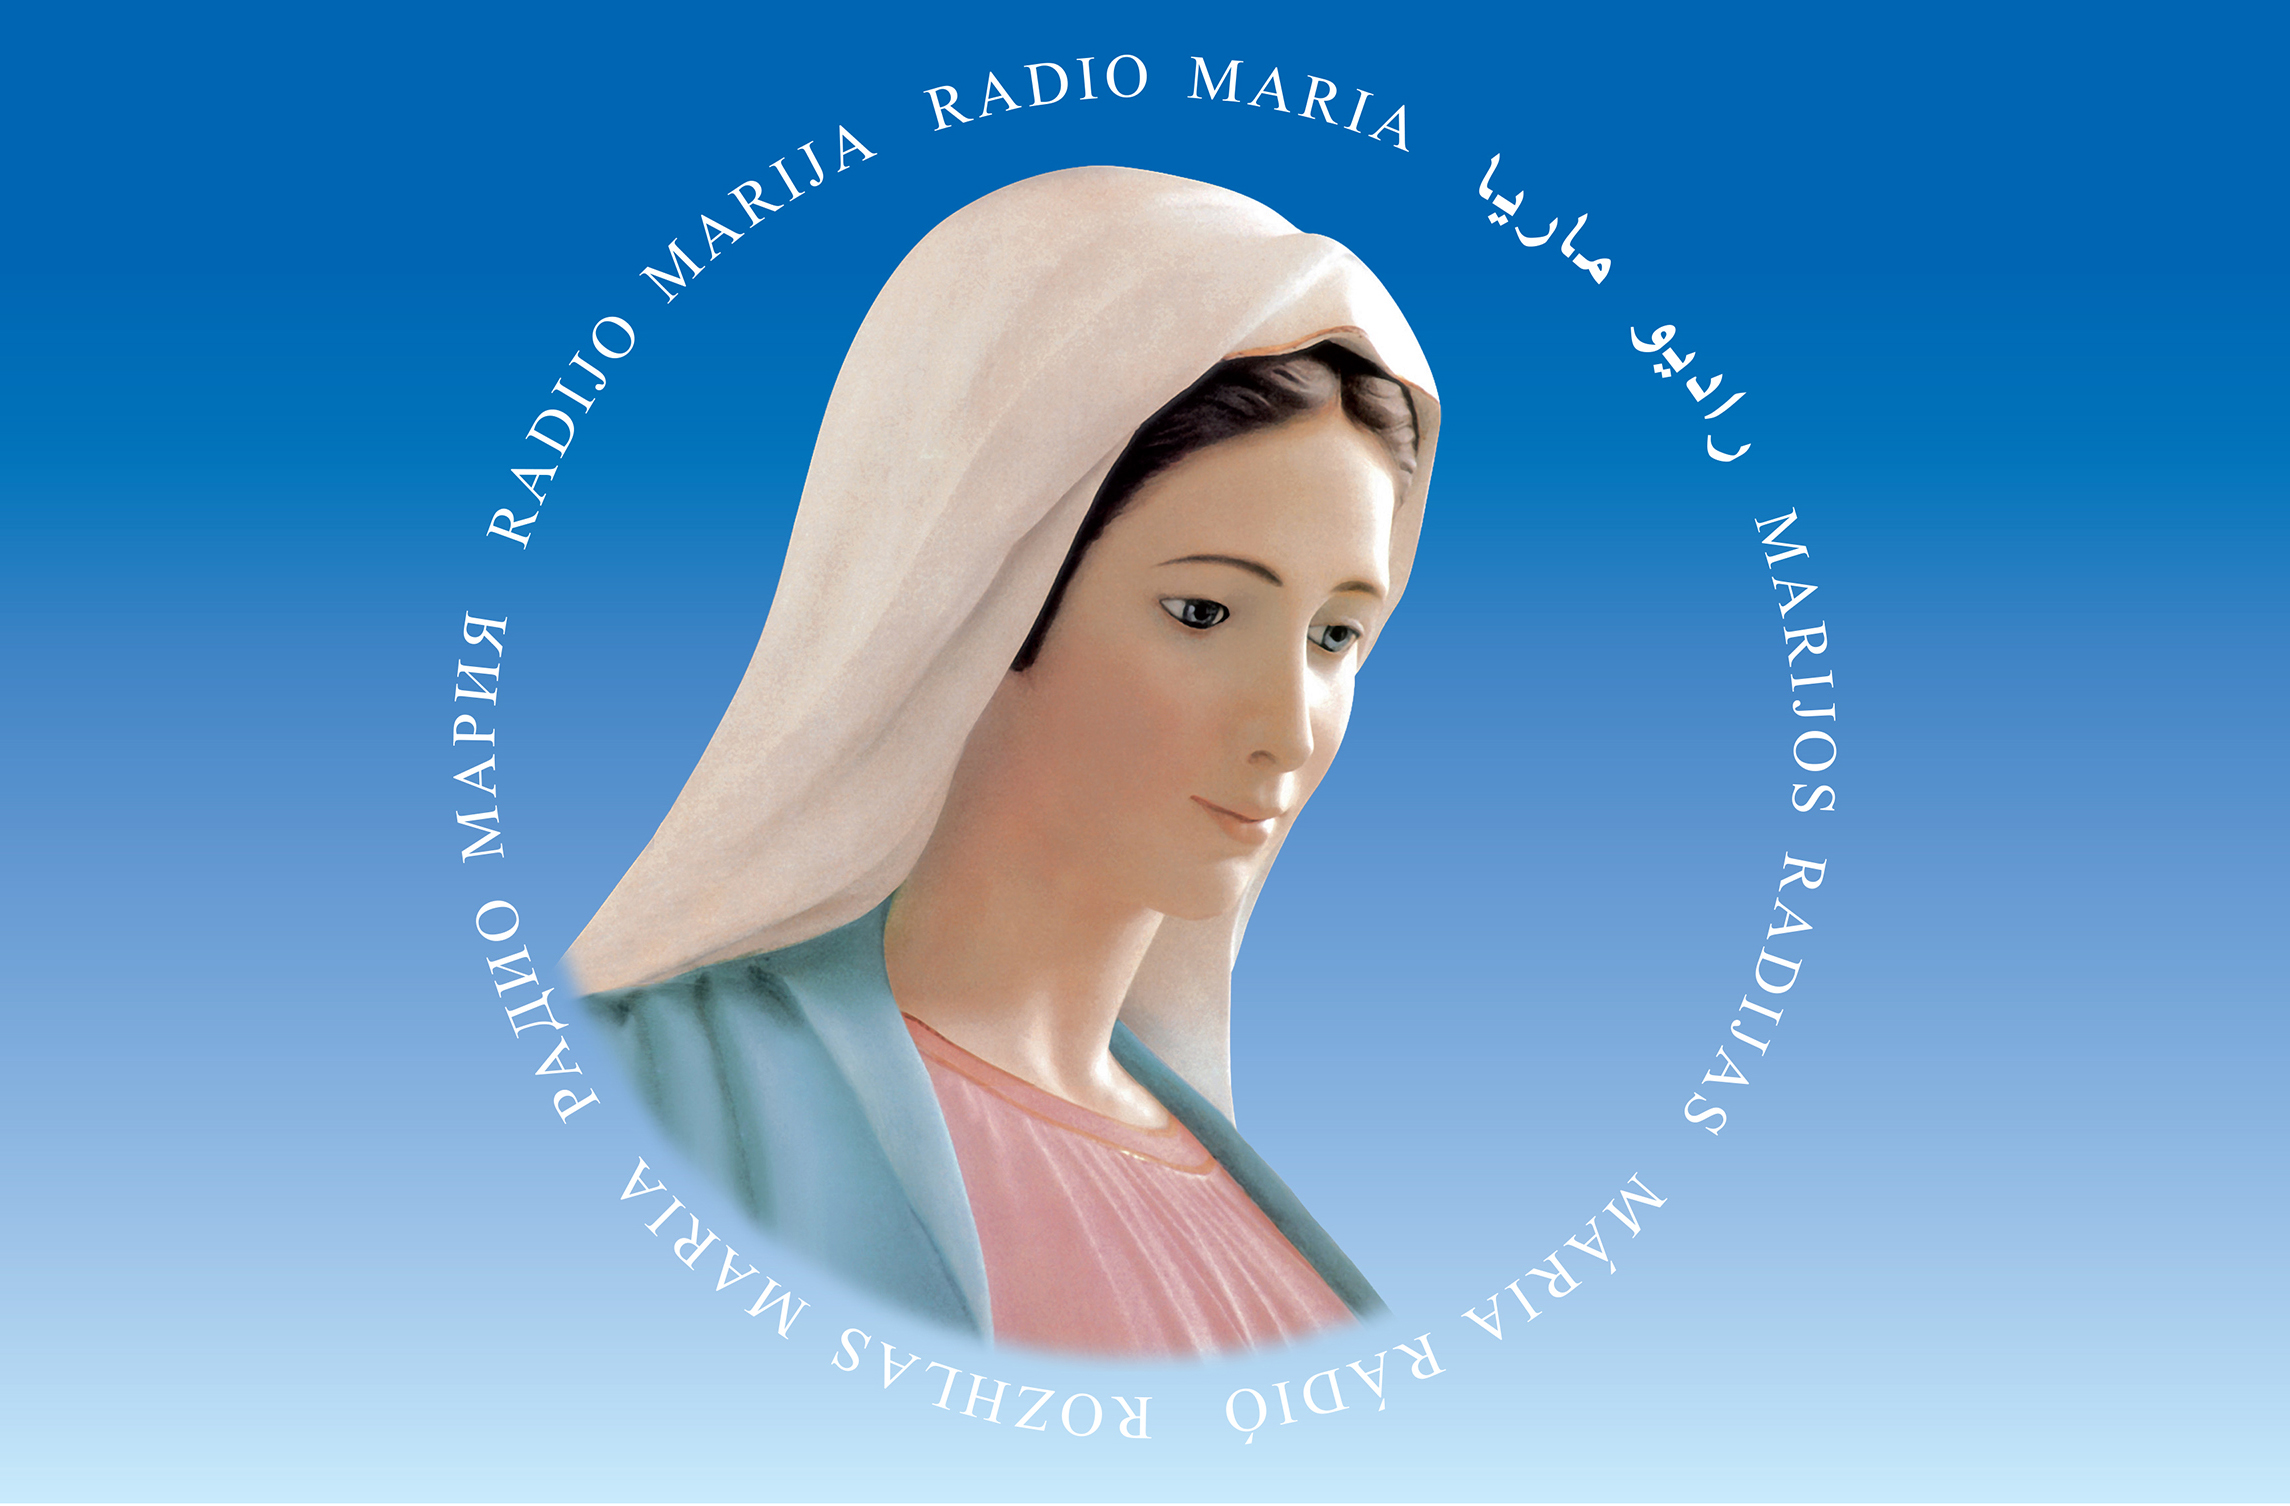 Prayer of Radio Maria's volunteers